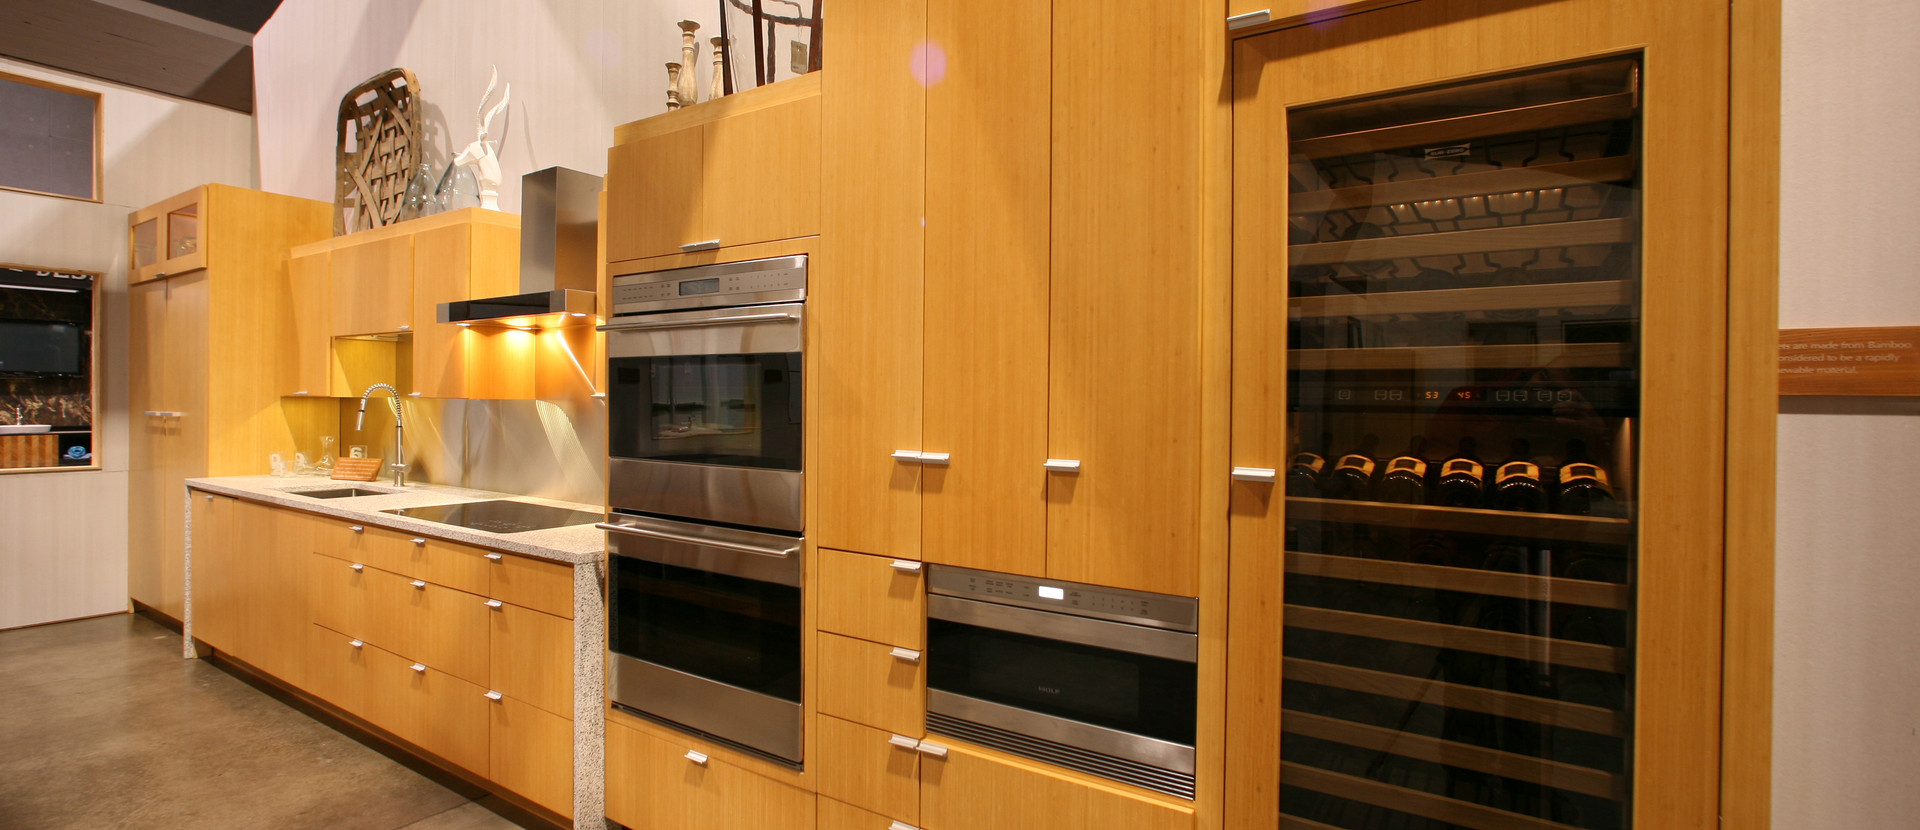 WINE COOLER AND MICROWAVE DRAWER